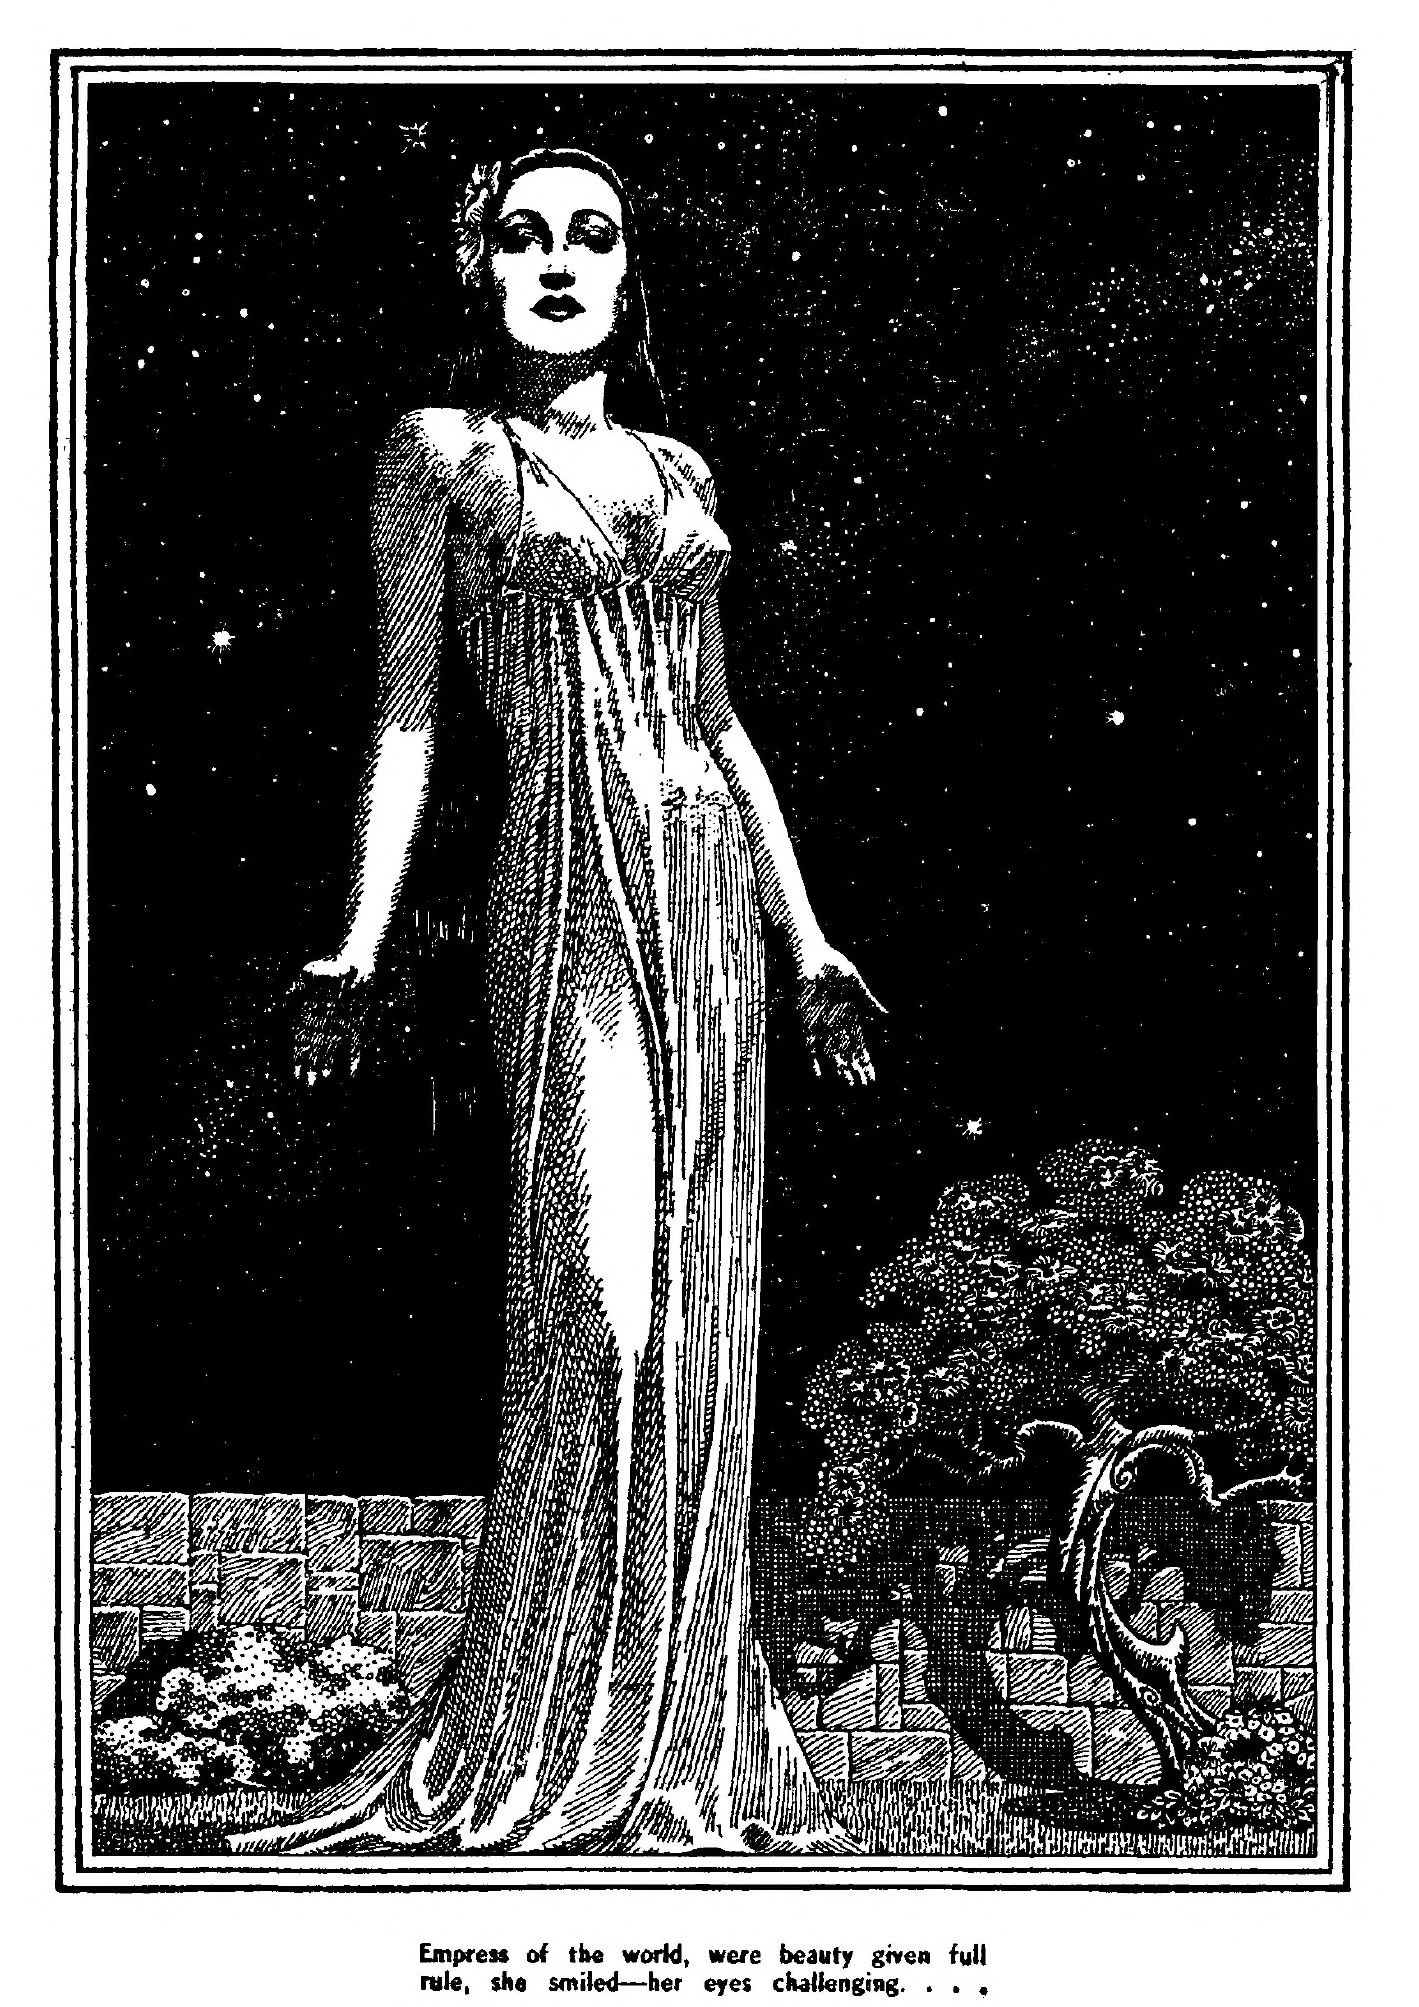 Interior art for an E.C. Vivian story, woman in a long clingy gown drawn by Lawrence Sterne Stevens.